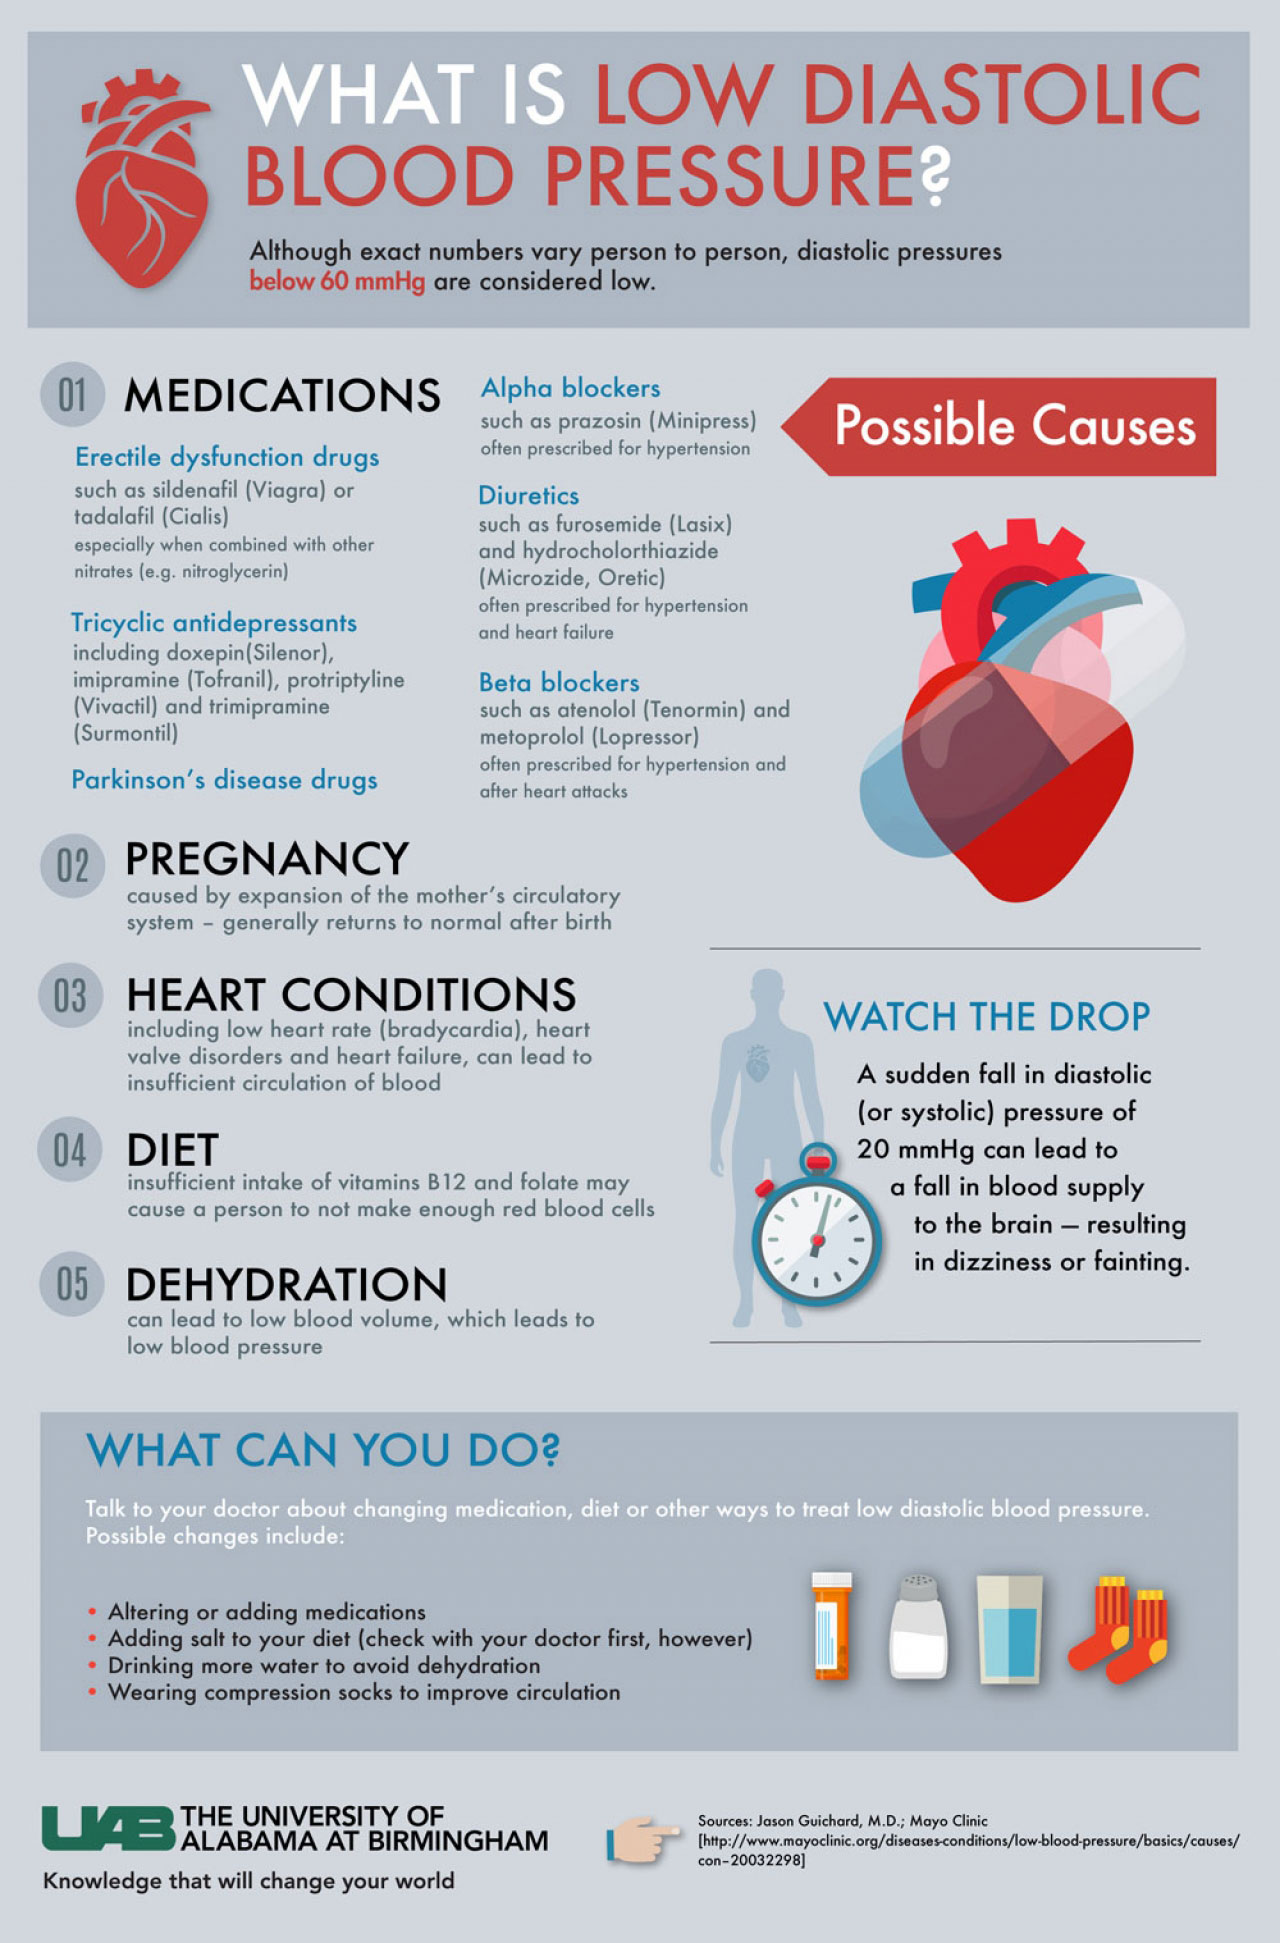 What Is Low Diastolic Blood Pressure